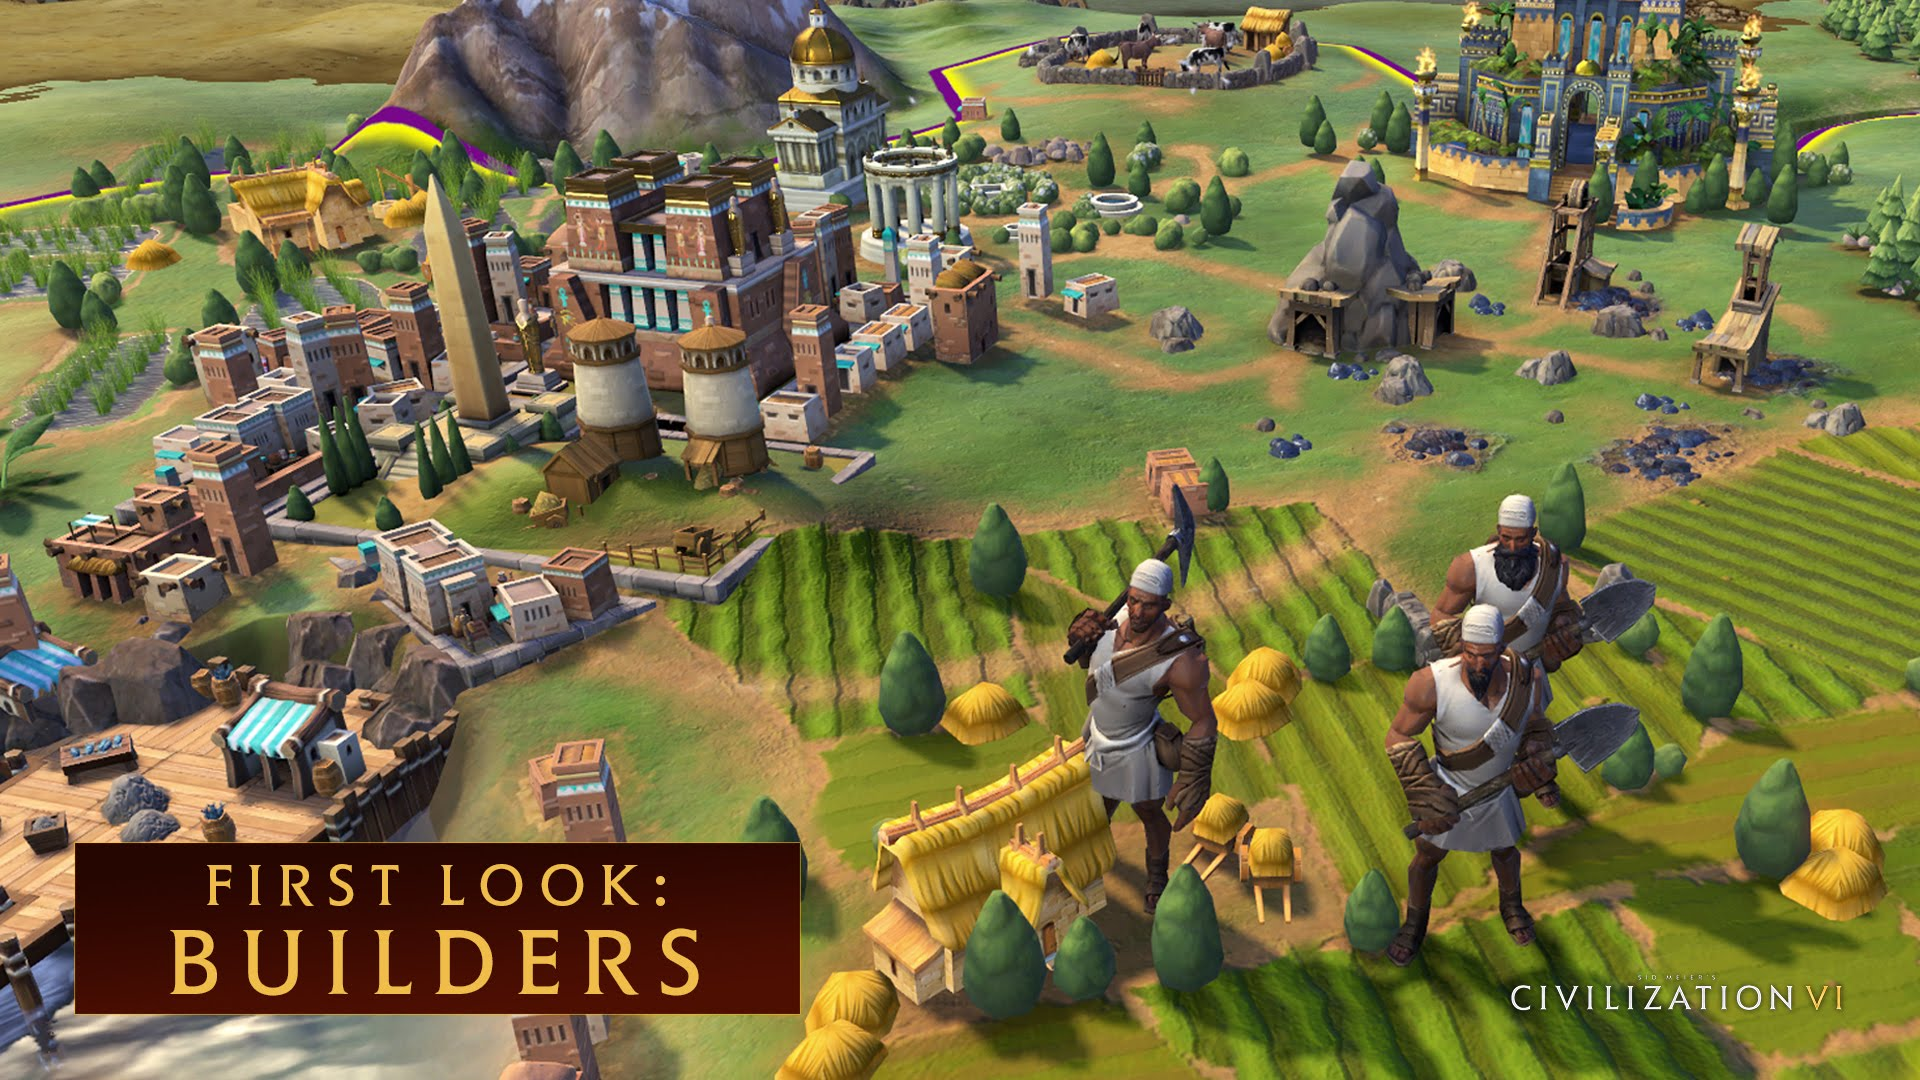 CIVILIZATION VI - First Look: Builders